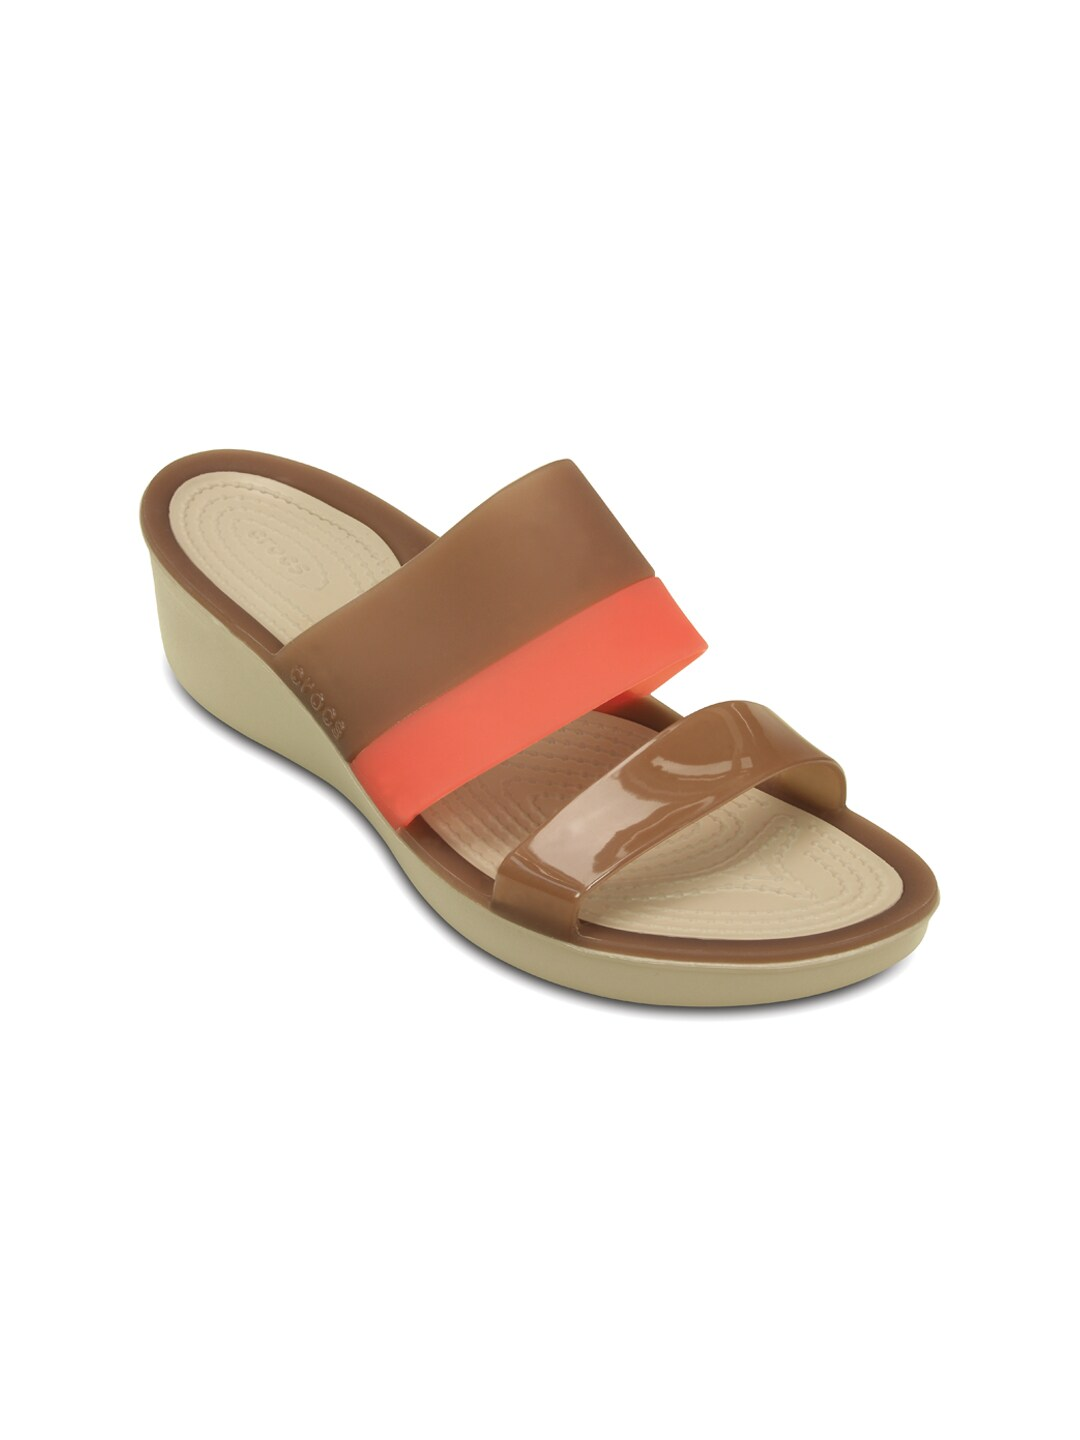 7b5e6bfbb45c Crocs 200031-854 Women Brown And Pink Wedges - Best Price in ...